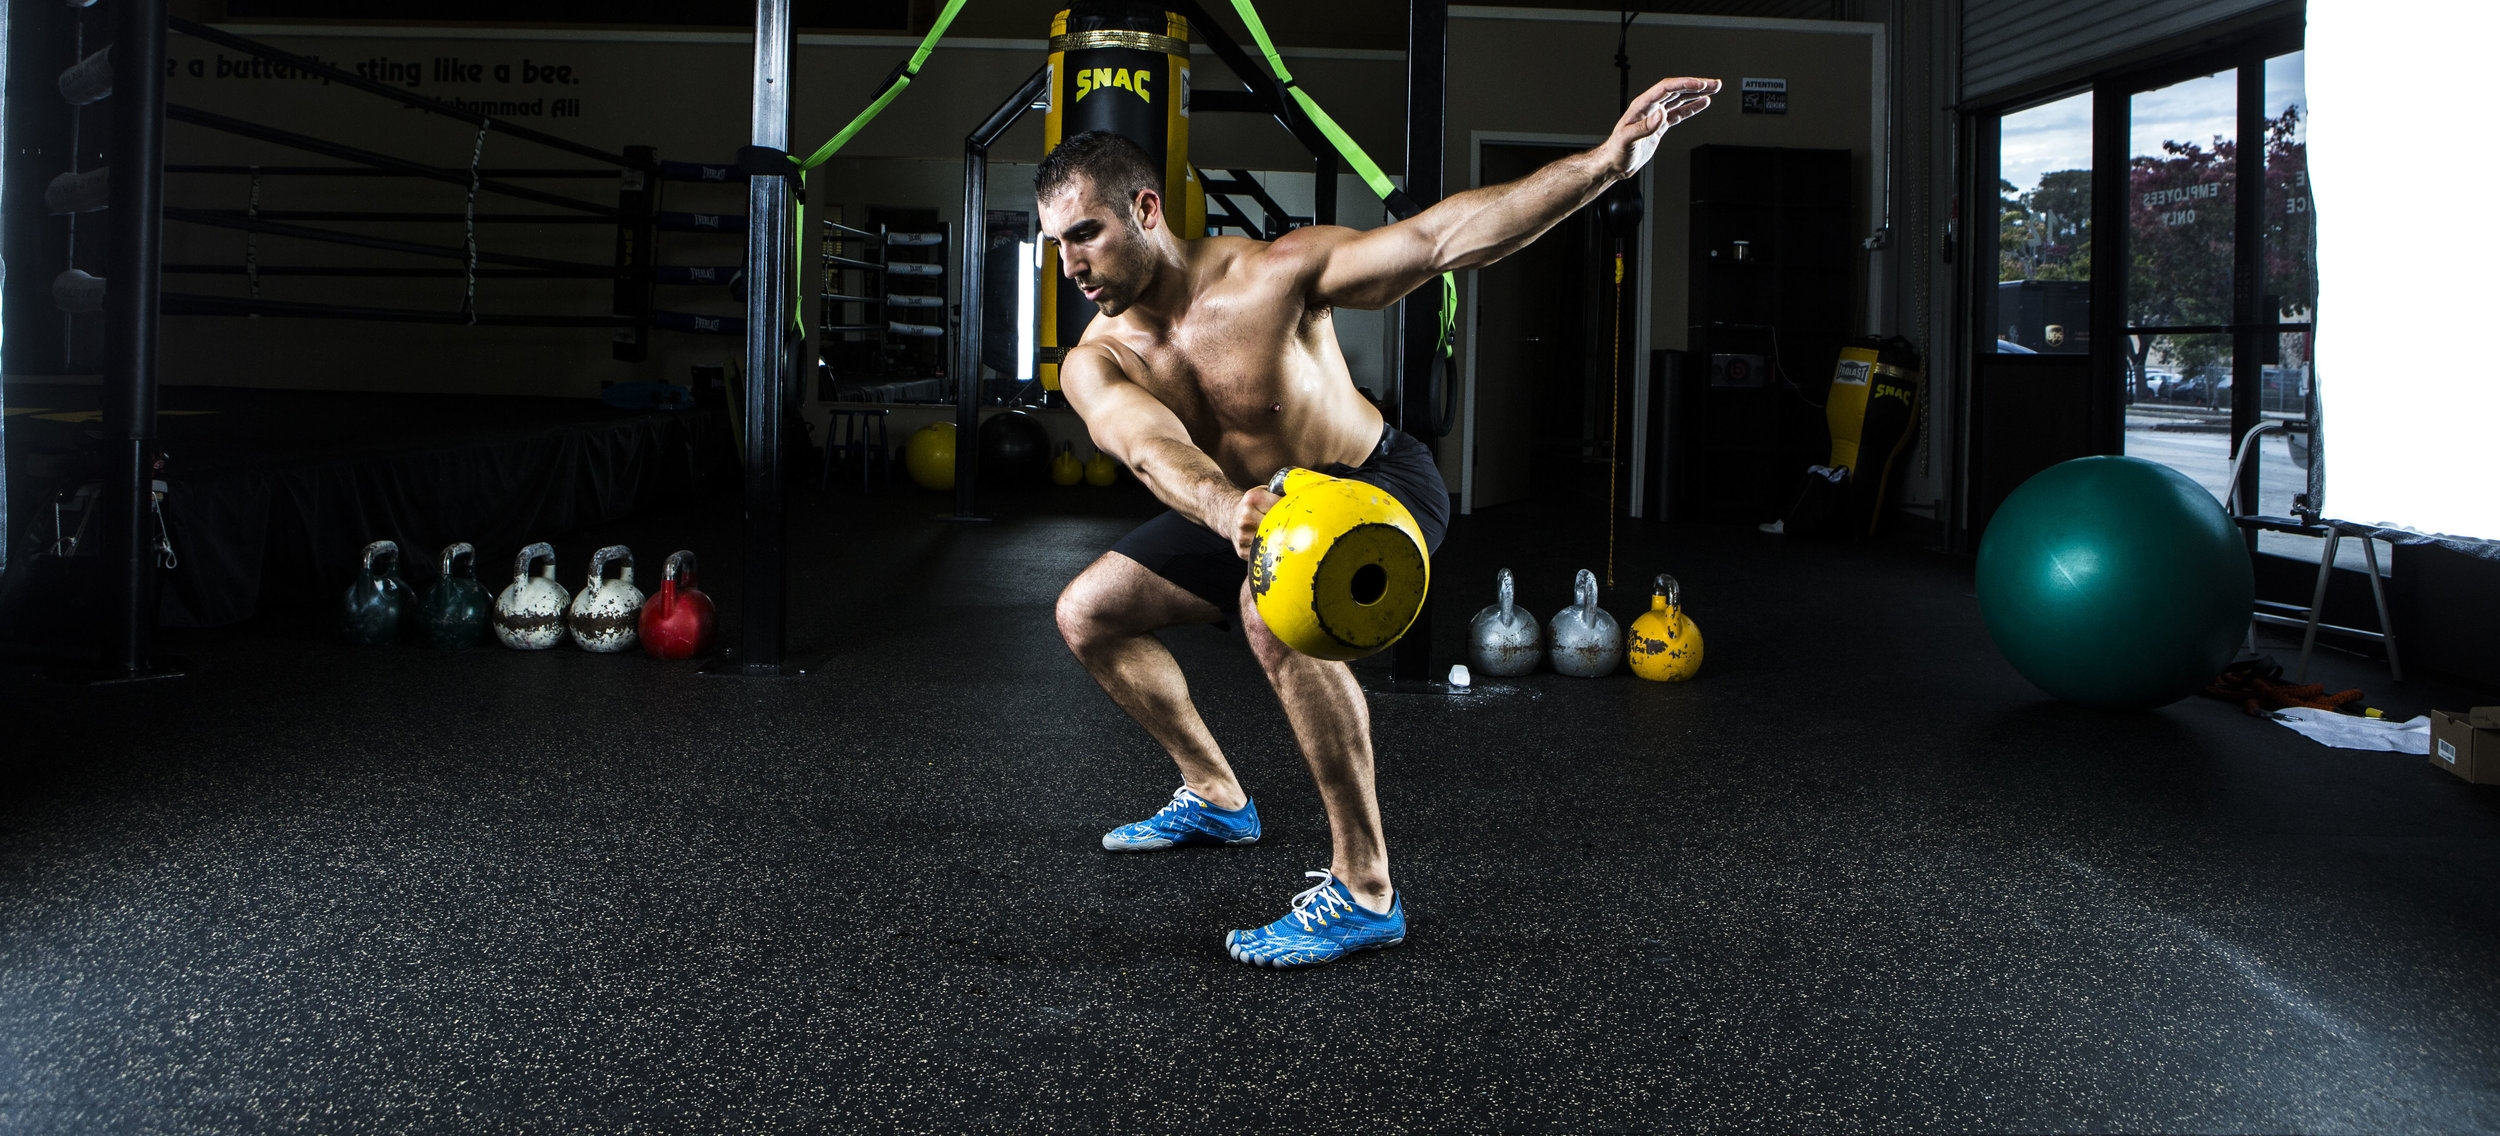 Kettlebell Performance - THE COMPREHENSIVE GUIDE, VOLUME 1